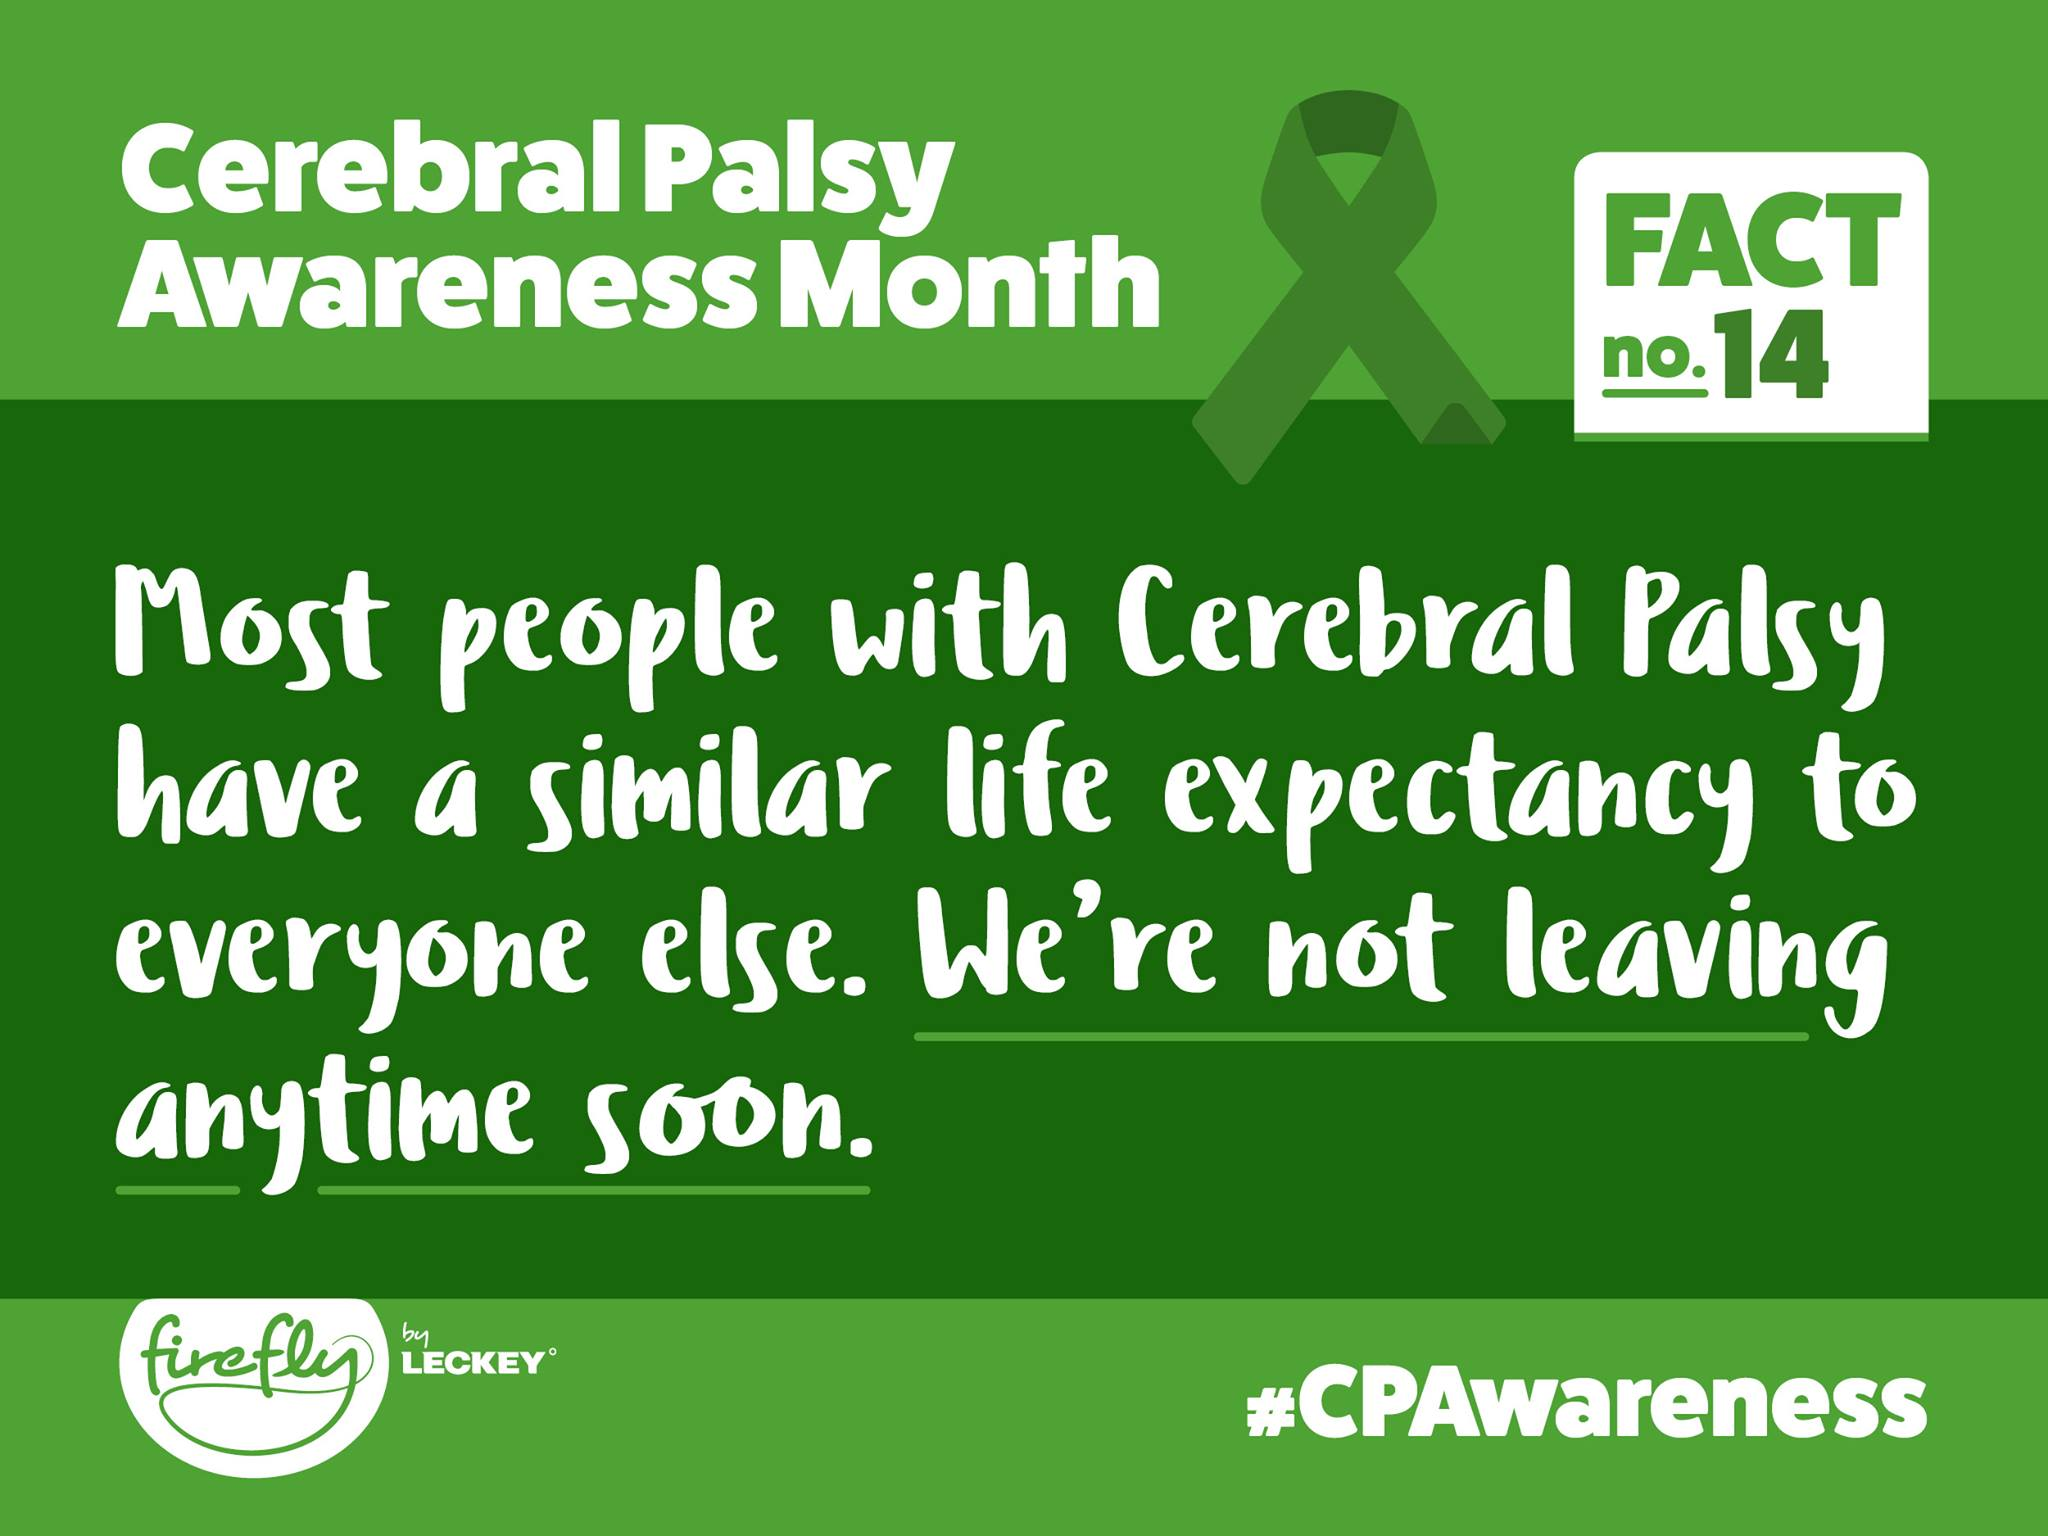 Promote Cerebral Palsy Awareness